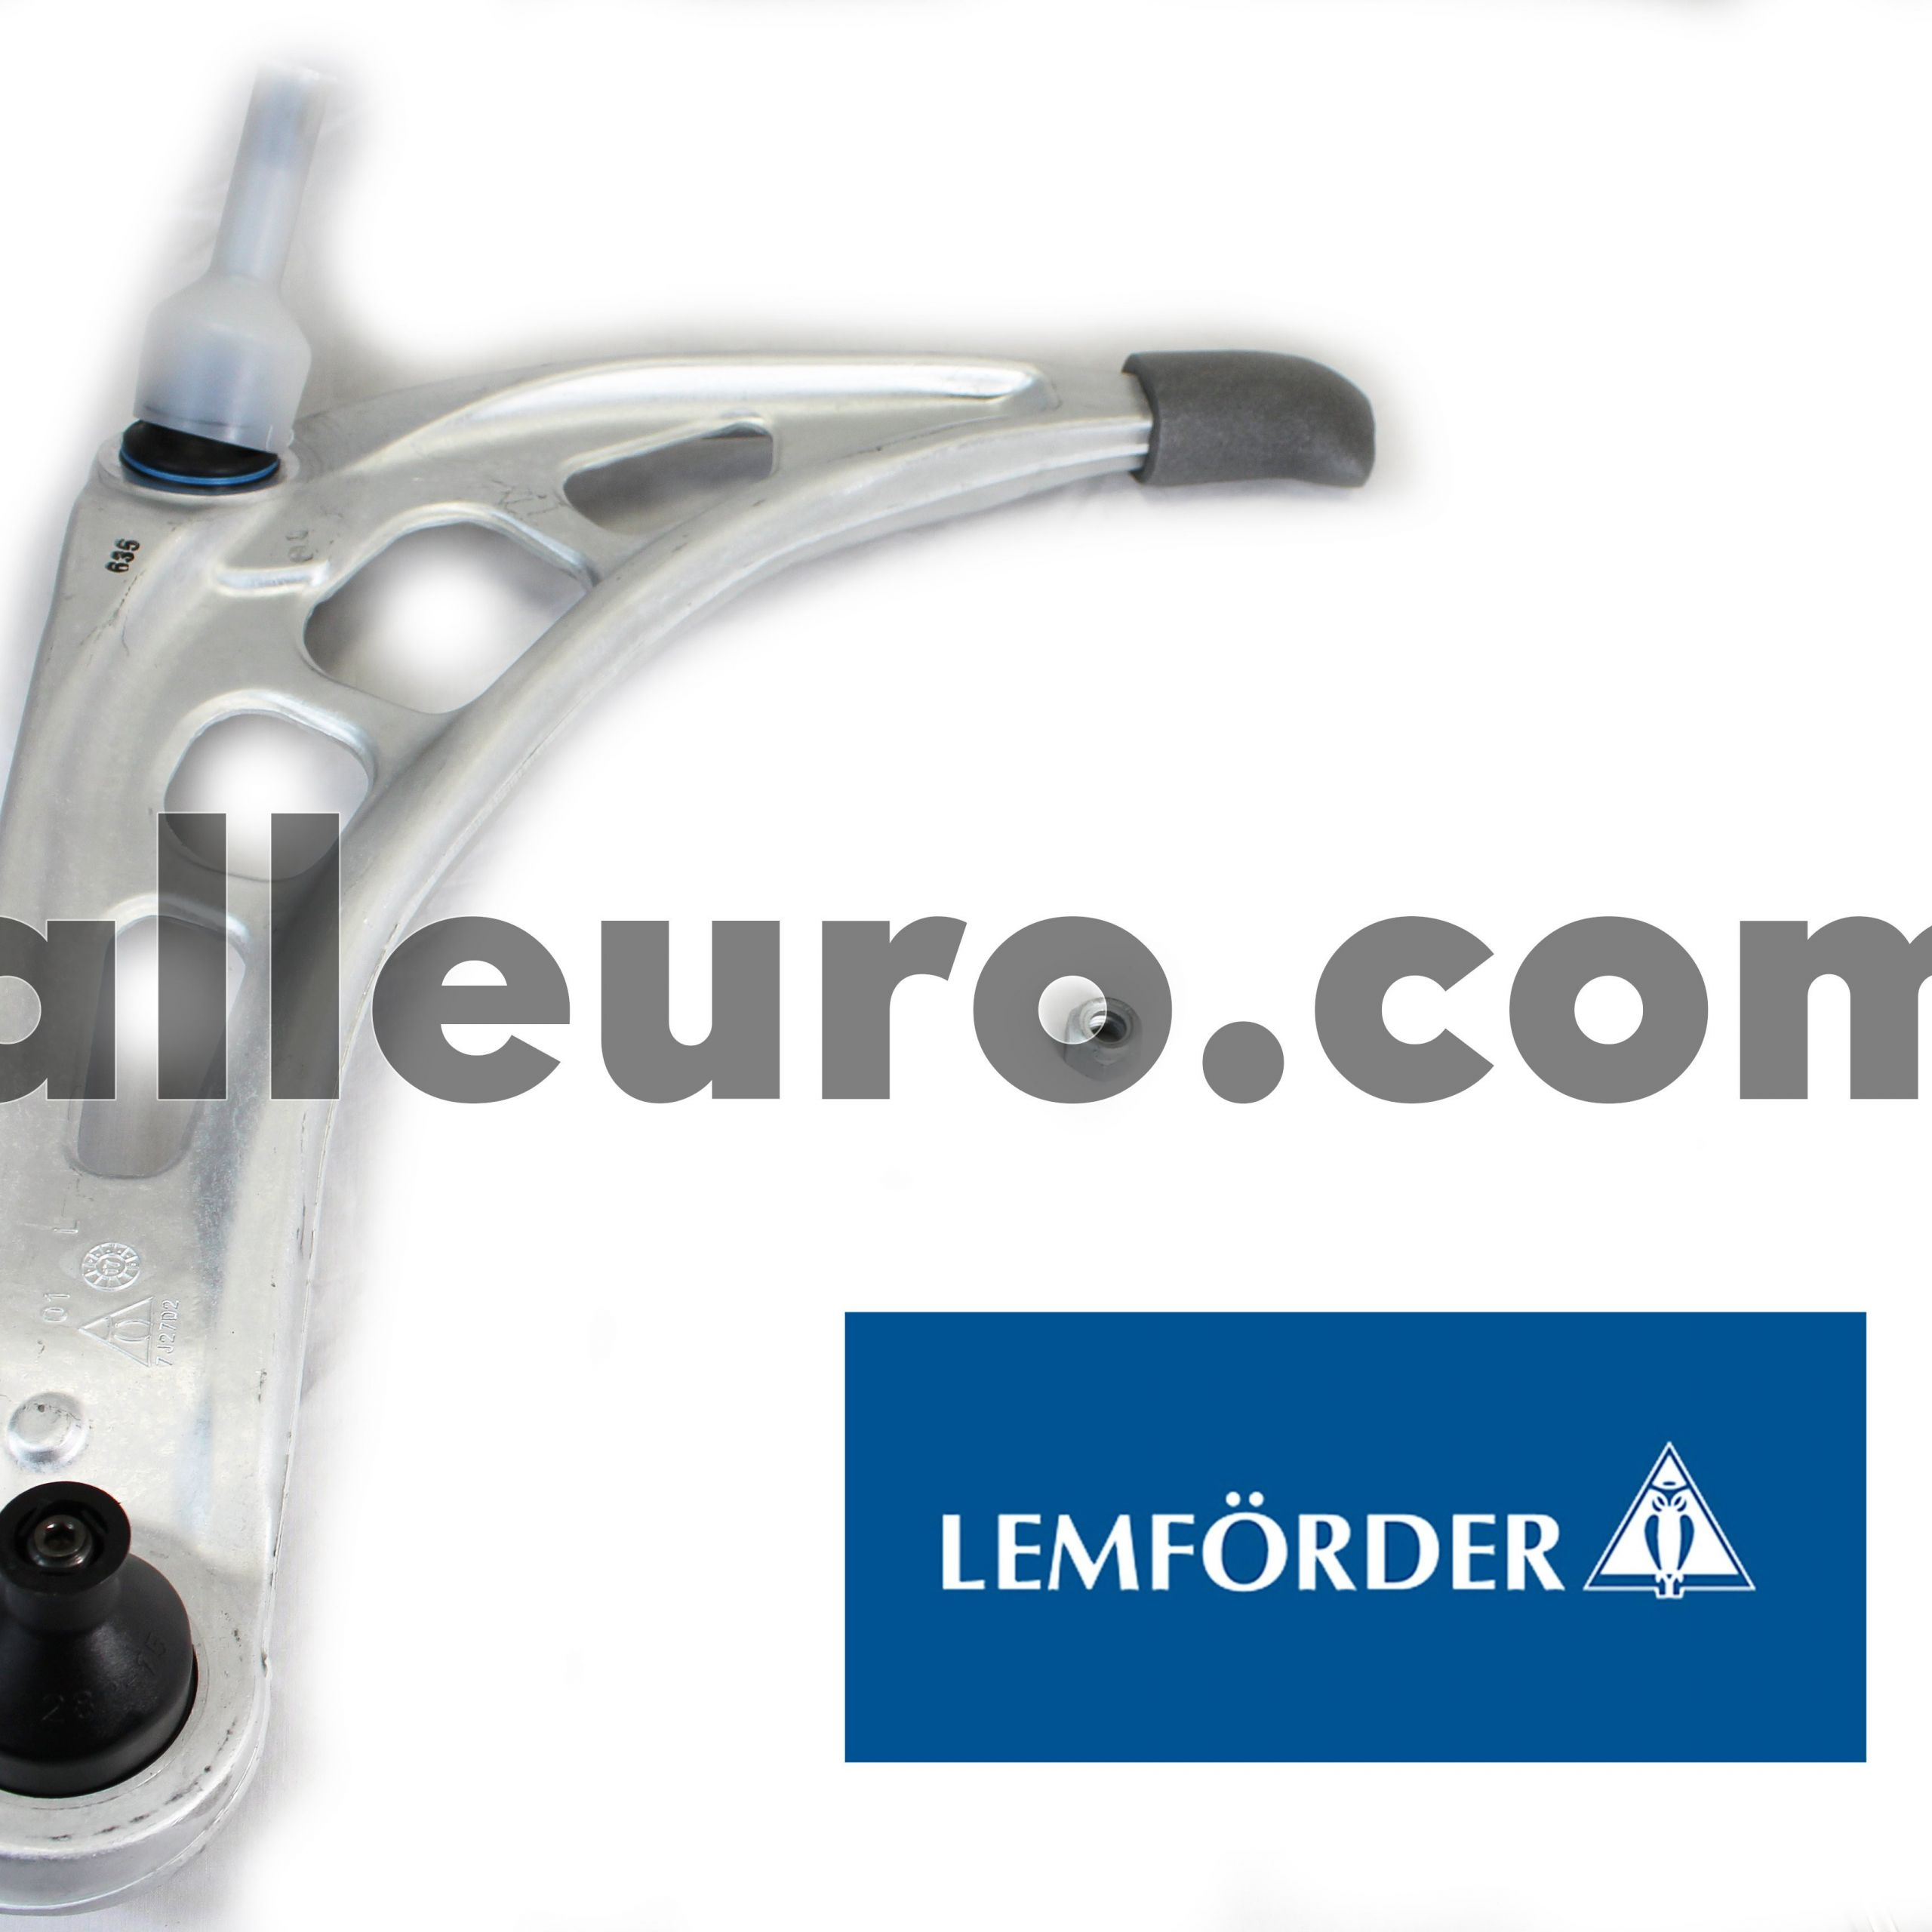 Carfax Vin Best Of Alleuro Lemforder Front Left Suspension Control Arm 2003